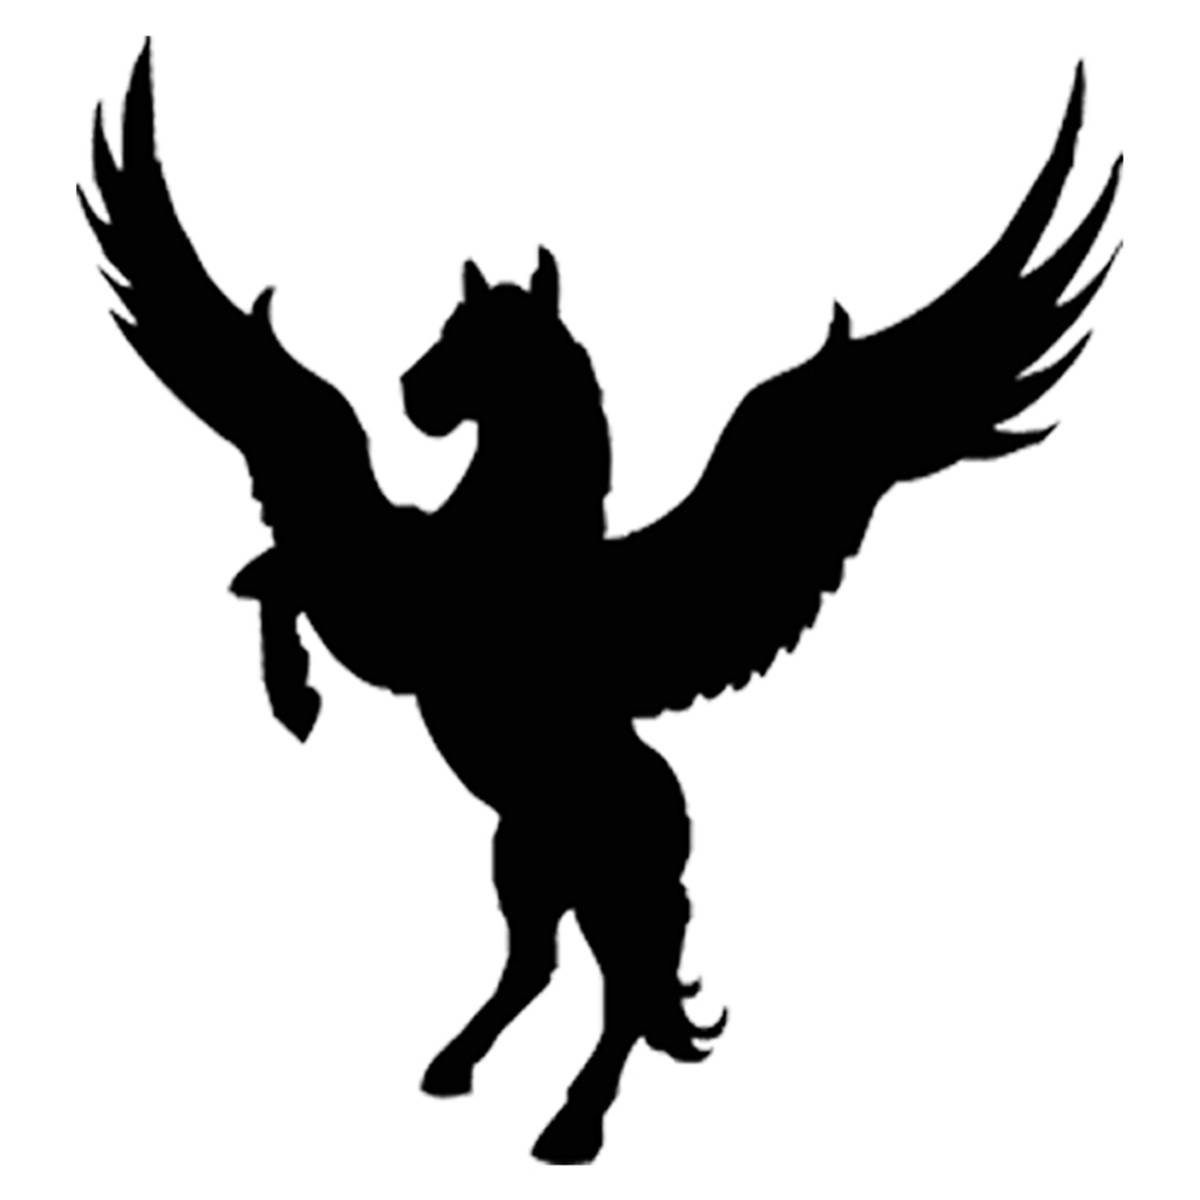 Details about 2X Wings Flying Horse Funny Wall Stickers Art Decor Car  Window Door Vinyl Decal.